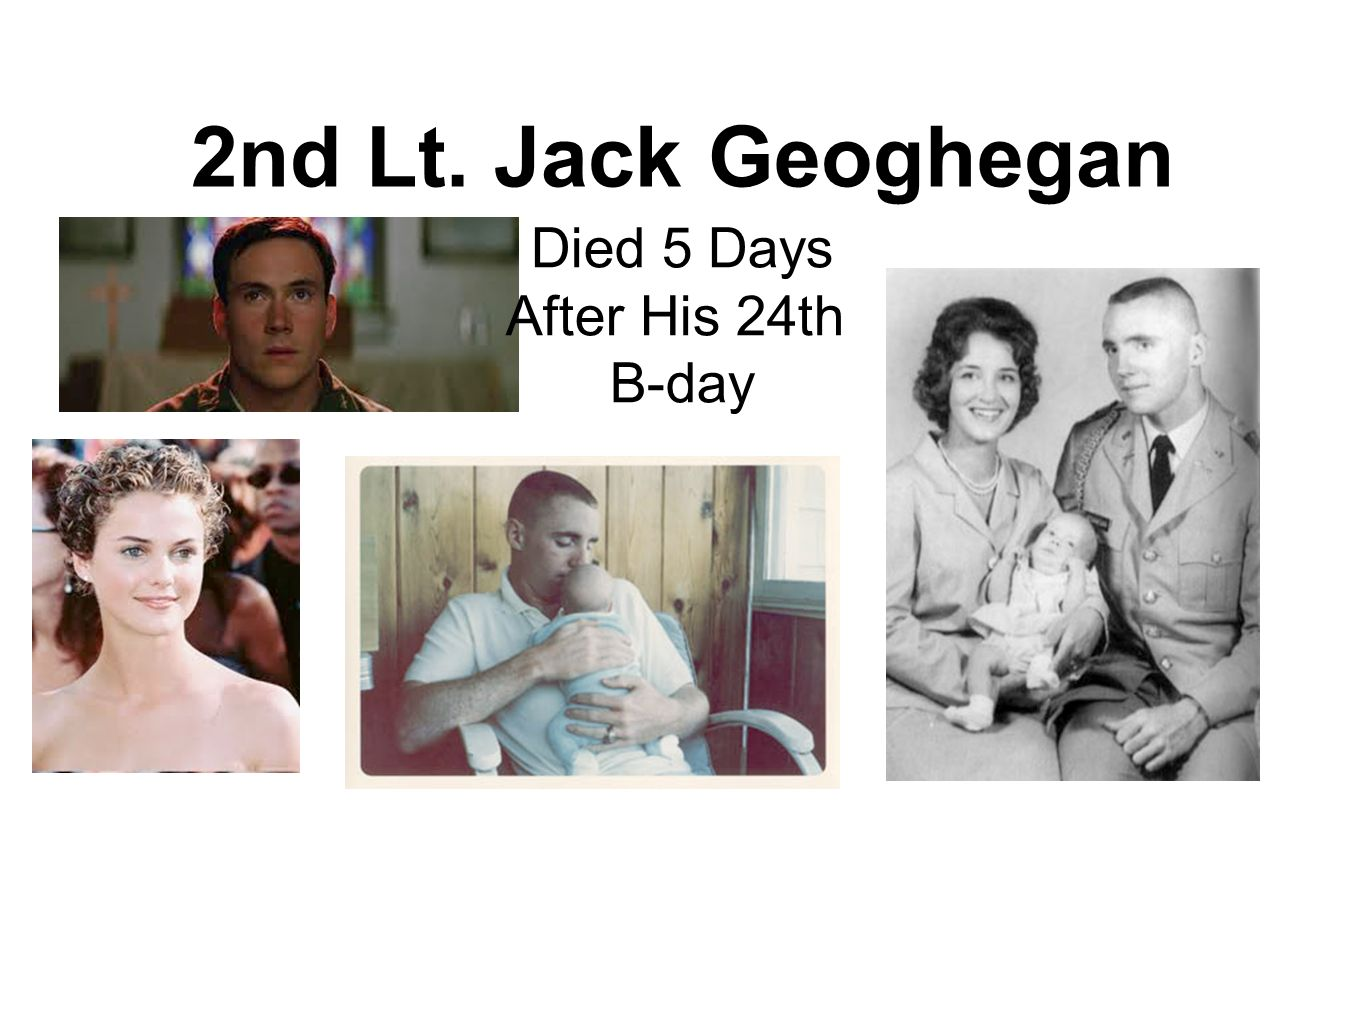 2nd Lt. Jack Geoghegan Died 5 Days After His 24th B-day